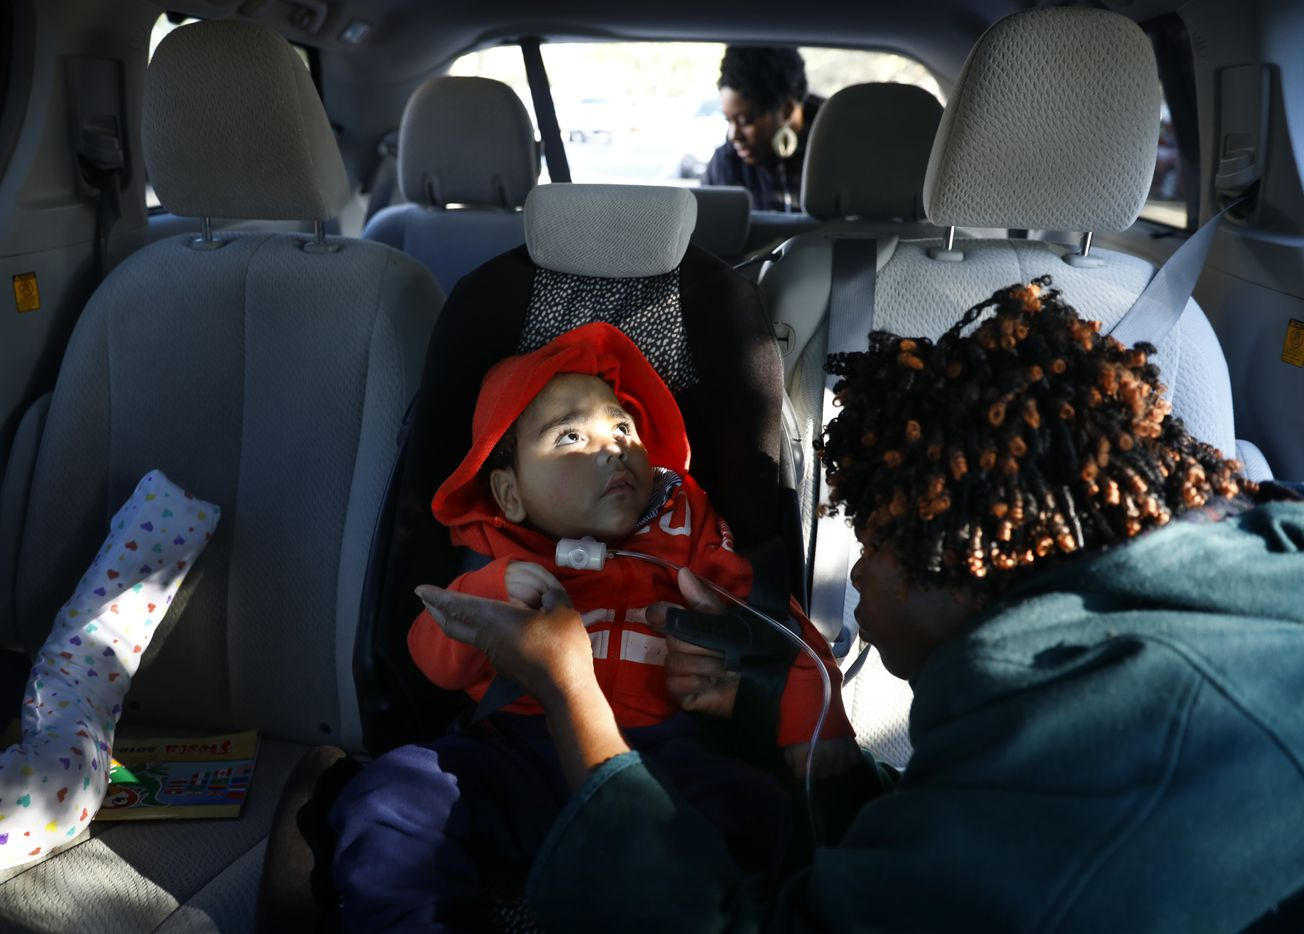 D'ashon's nurse straps him into his car seat after his checkup at a Dallas clinic.